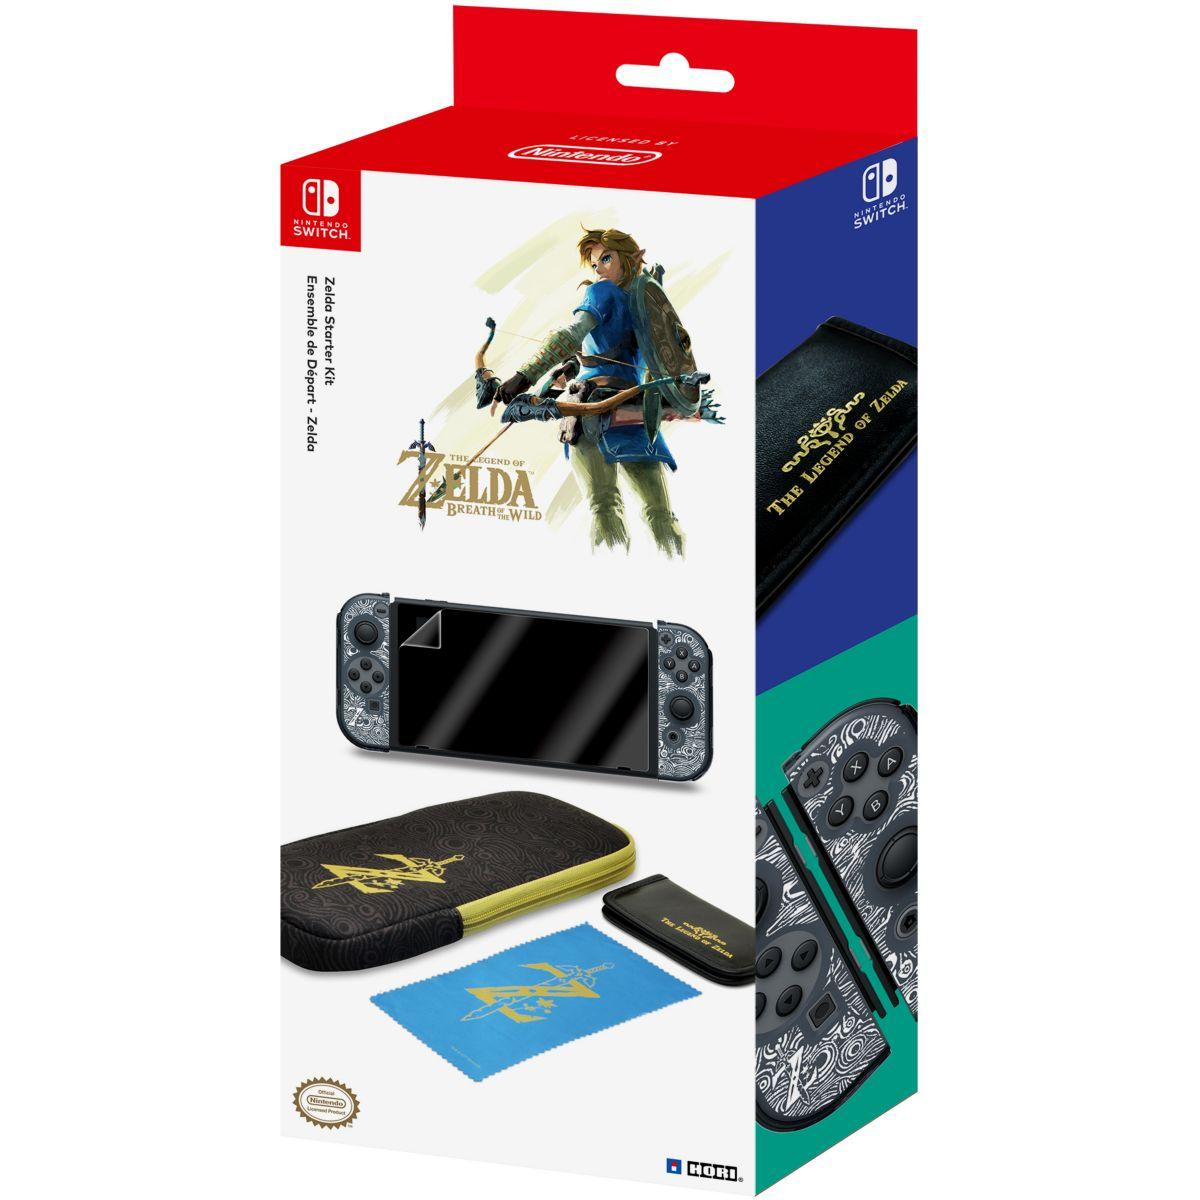 Acc. hori kit de transport zelda switch - 10% de remise immédiate avec le code : multi10 (photo)